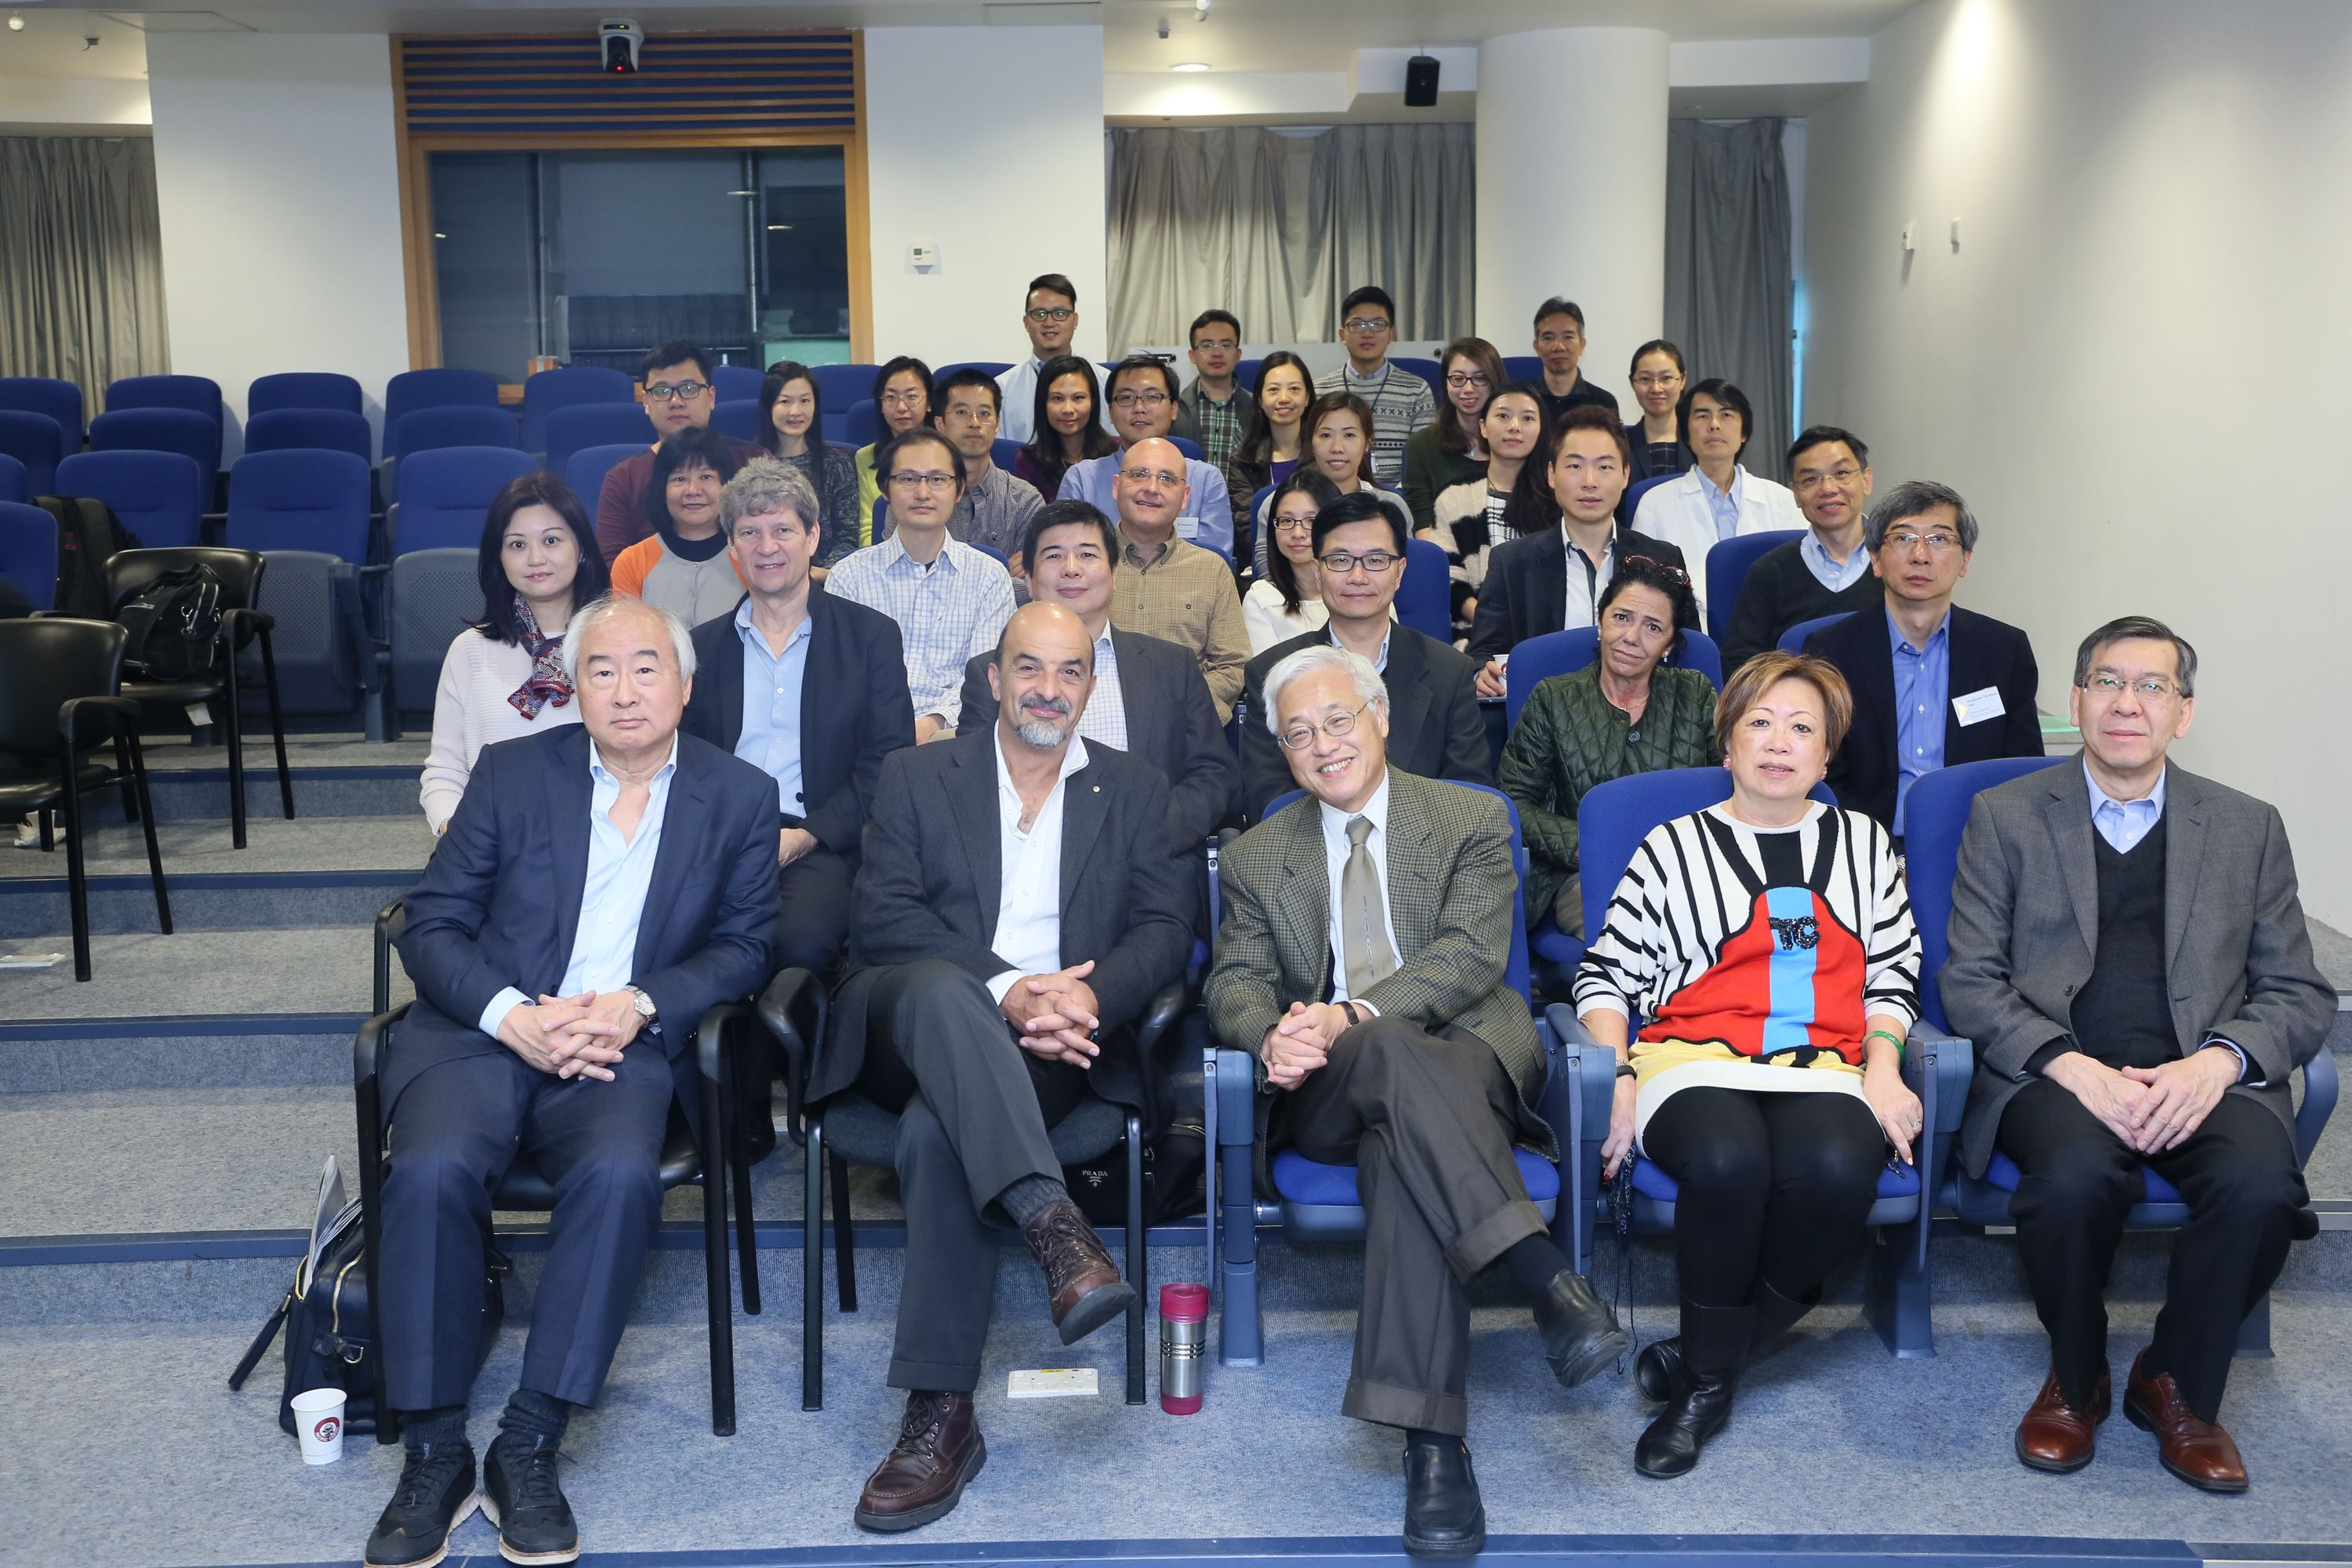 Members of the CUHK-HKU joint research team. The senior authors of the MARVEL project are Professor Paul Tam, Department of Surgery at HKU (middle, front row), Professor Elly Ngan, Department of Surgery at HKU (1st left, second row) and Professor Kevin Yip, Department of Computer Science and Engineering at CUHK (2nd left, third row).